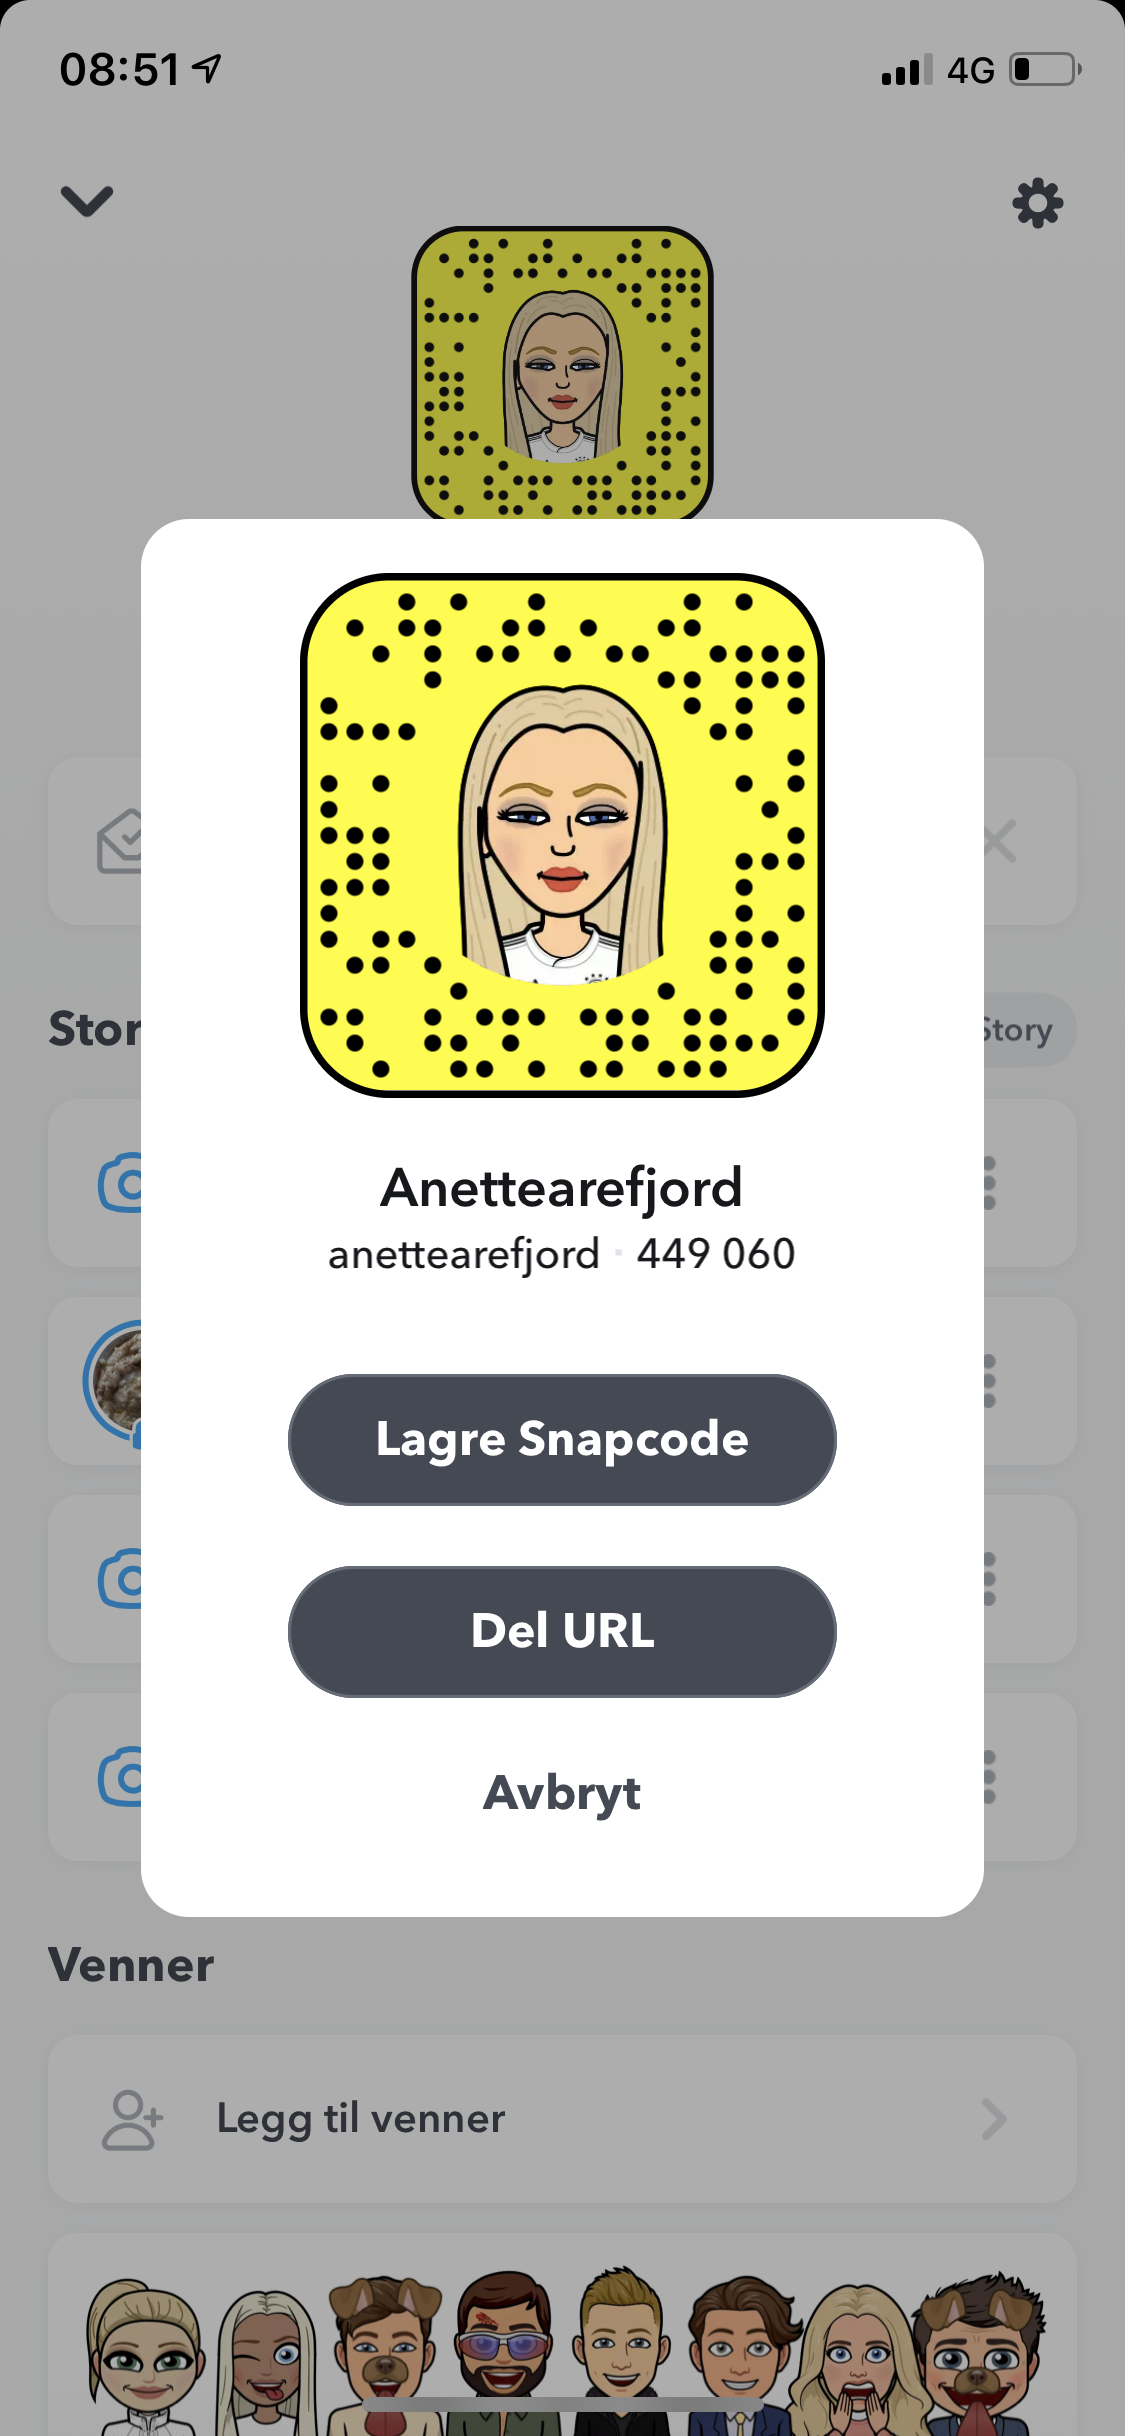 @anettearefjord's snapchat picture for anettearefjord